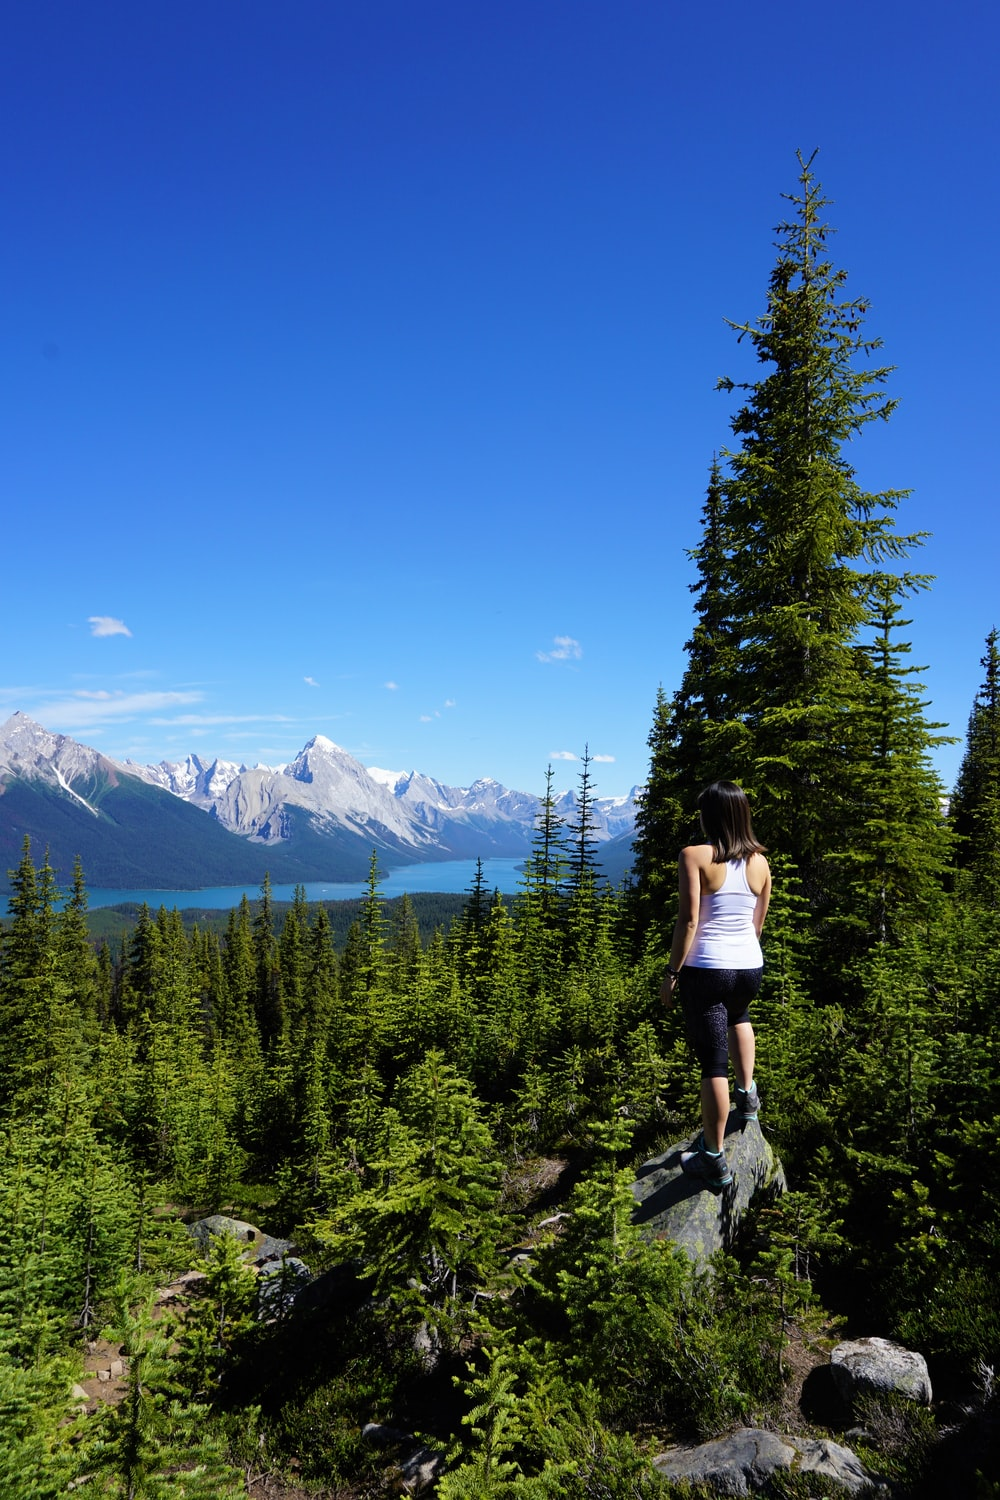 woman in black tank top and blue denim shorts standing on rocky mountain during daytime